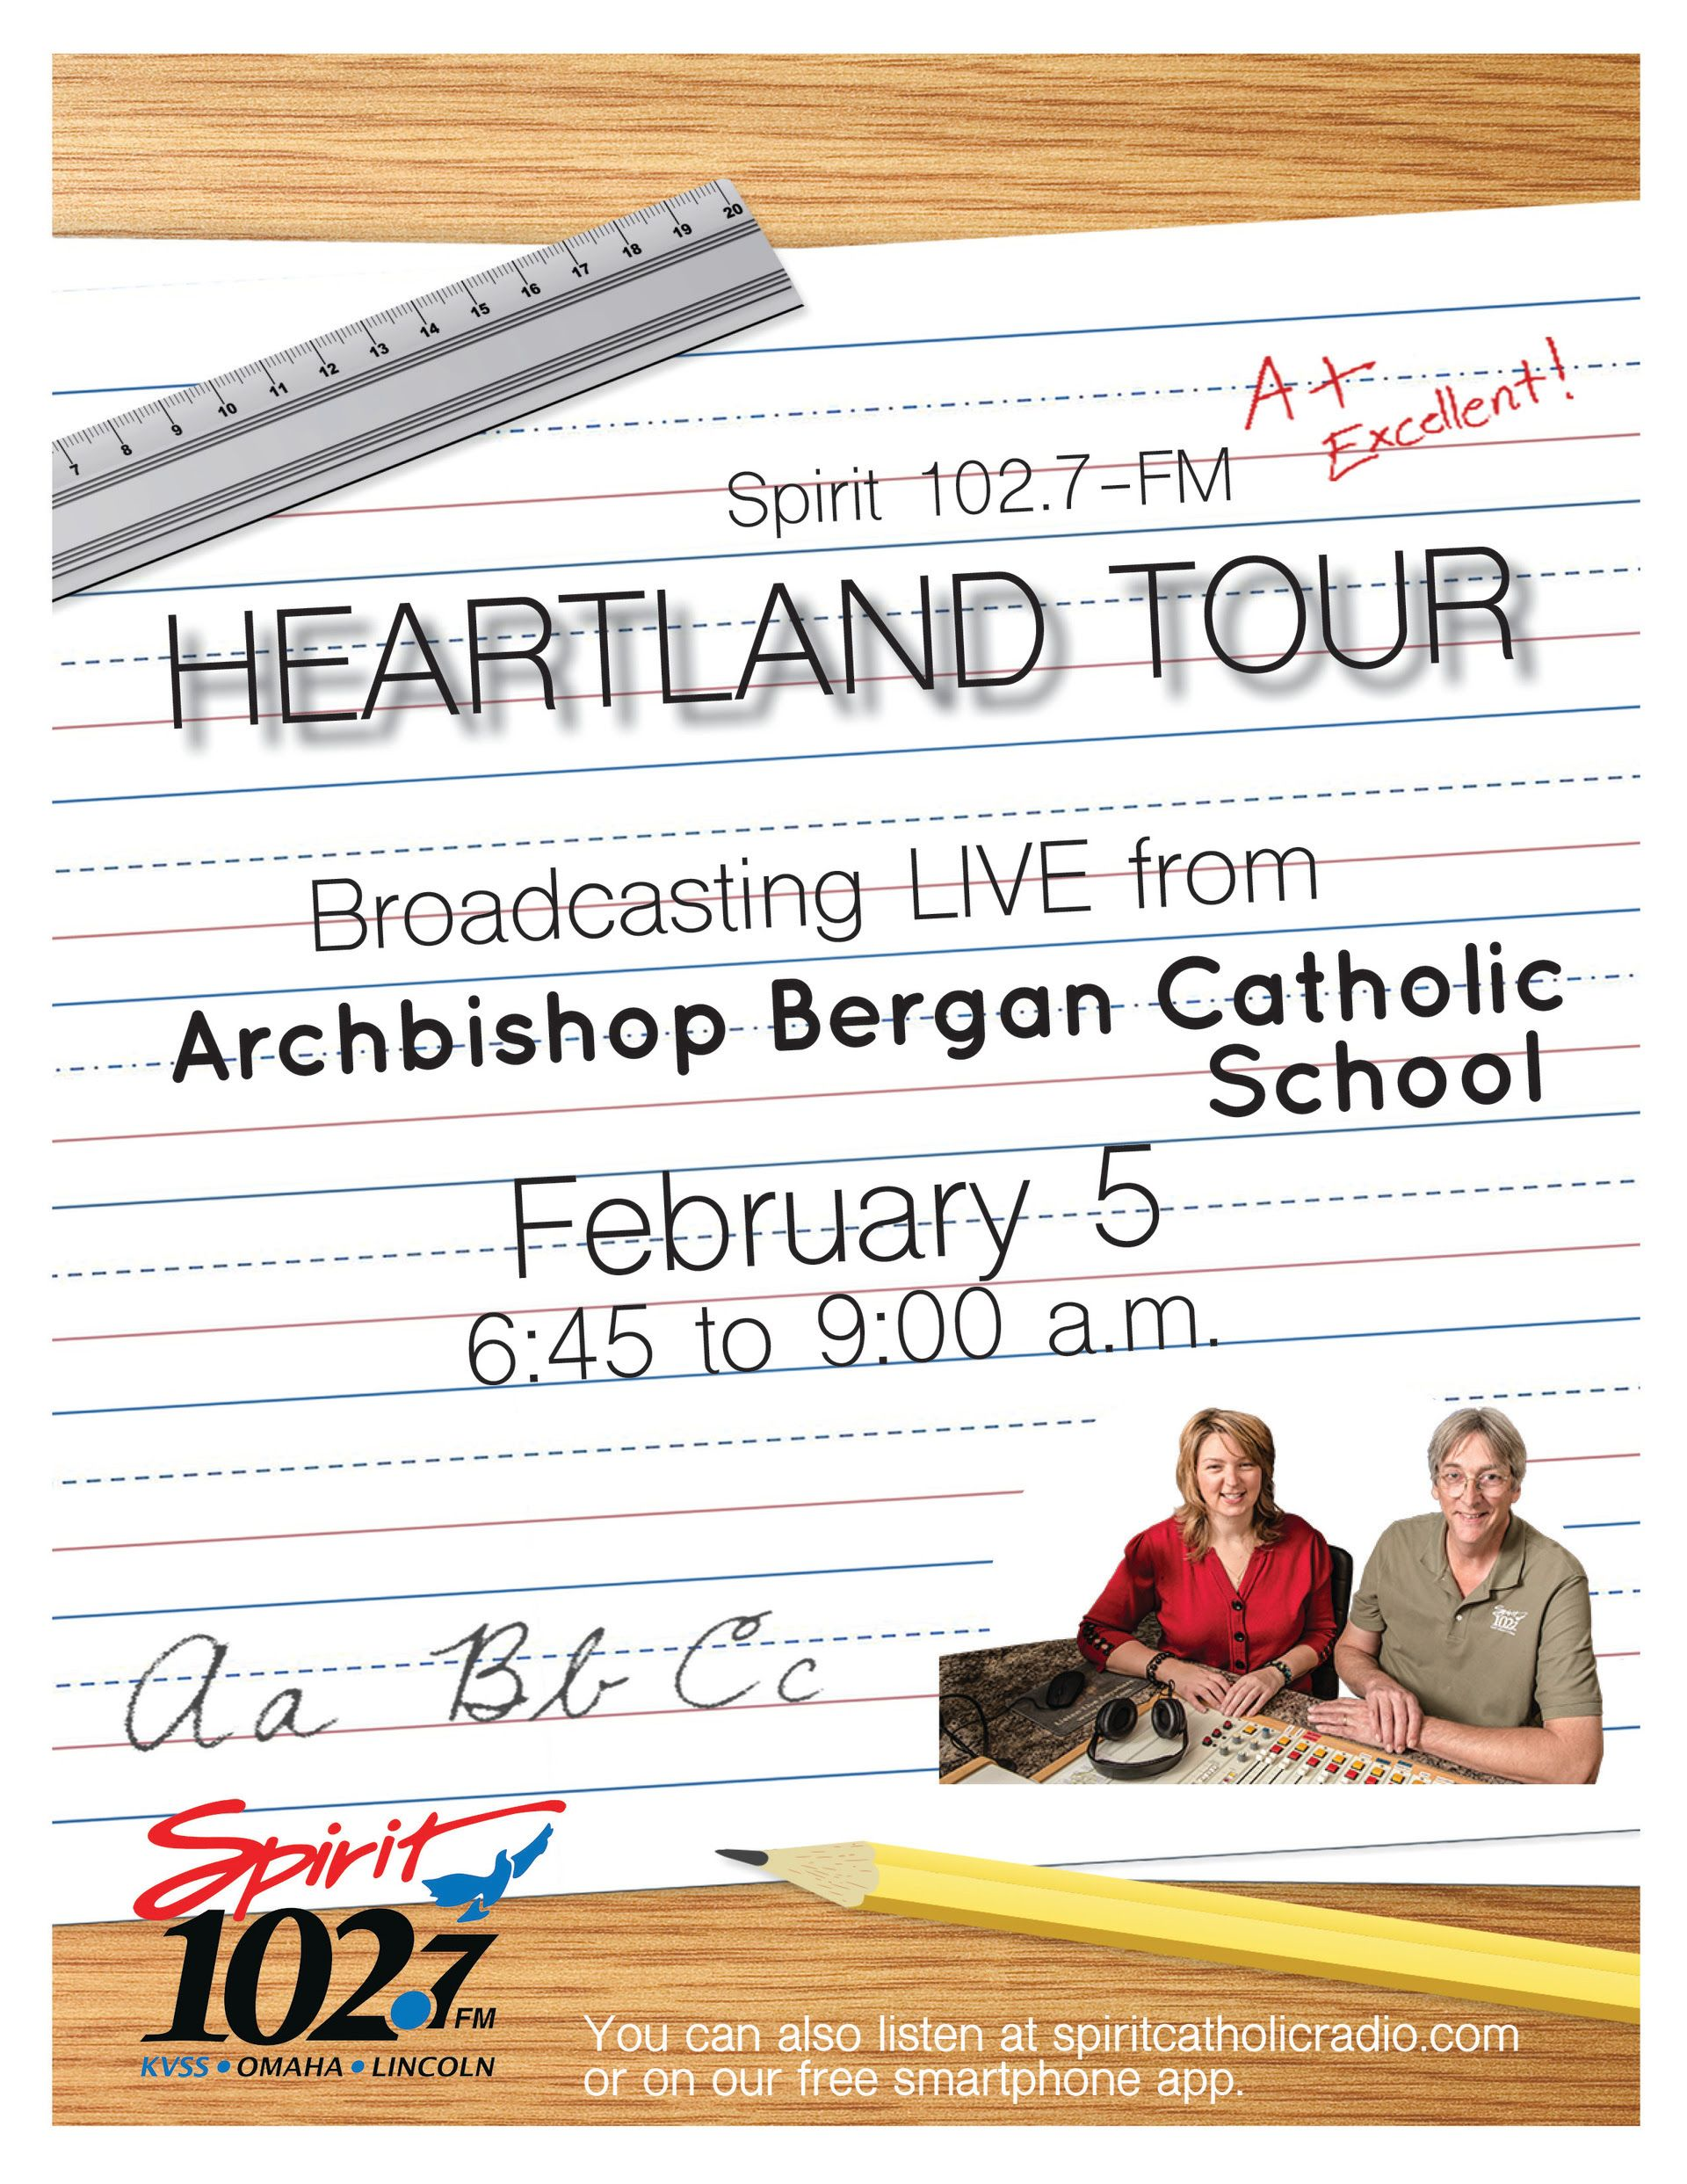 Spirit 102.7 - FM Heartland Tour